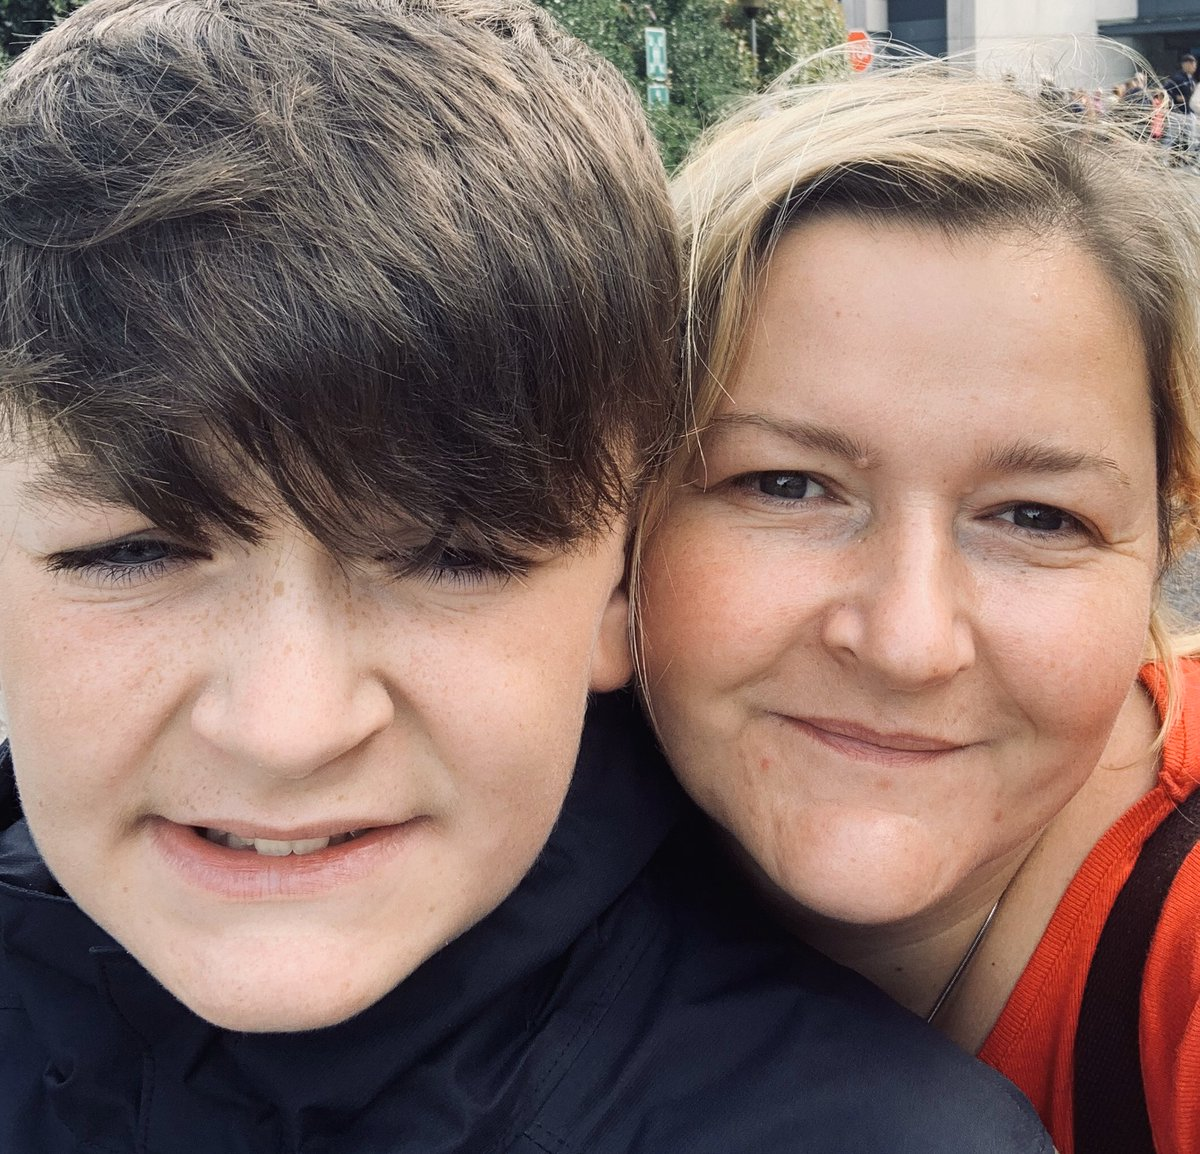 test Twitter Media - It's been a year since Type 1 diabetes crashed into our lives! A total life changer for us all! Everyday brings challenges but like the hero he is manages it with ease 💙 he is an inspiration and am proud to be this kids Mum #type1 #type1diabetes #myhero #hopeforacure https://t.co/TmiFrL6vPv